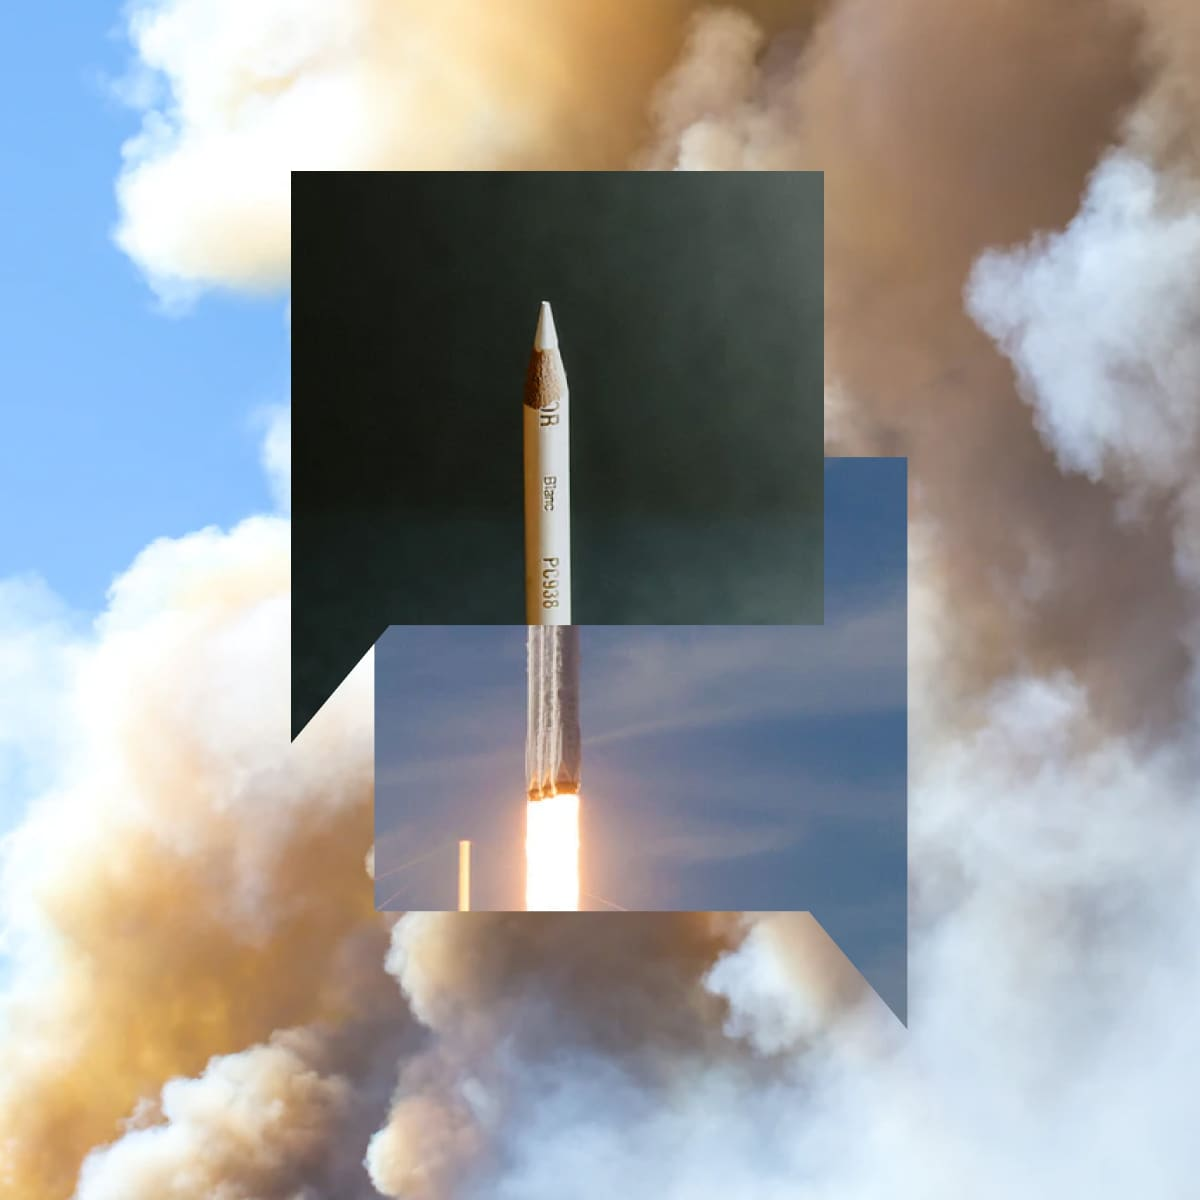 Collage image of two chat bubbles double-exposed on top of a rocket.